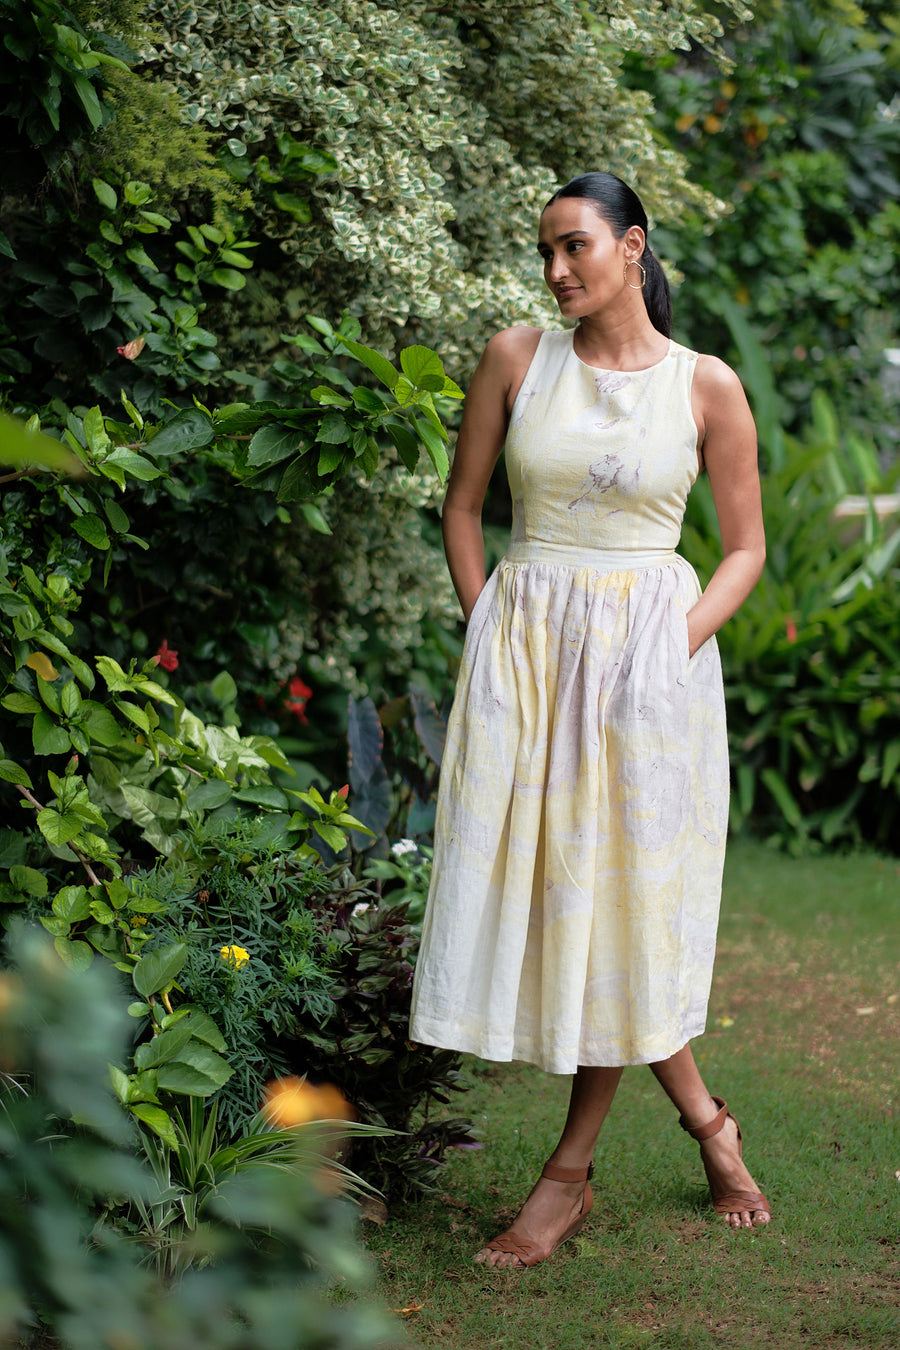 Wilden Linen Dress - Ethical made fashion - onlyethikal